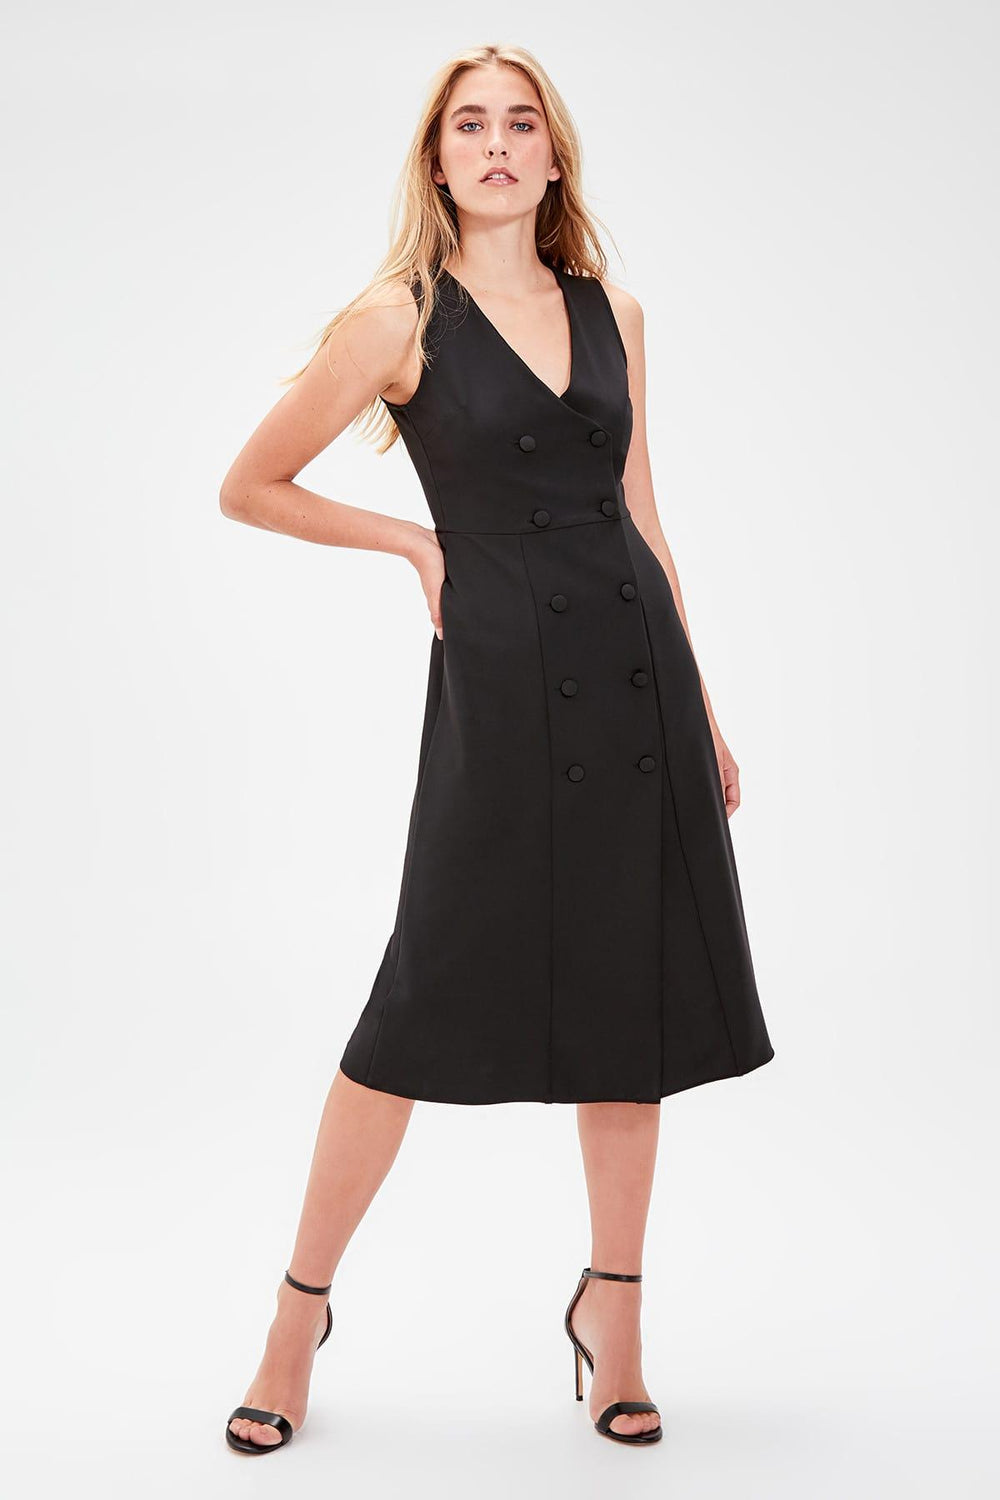 Miss Zut Miss Zut Black Button Dress Miss Zut &CO